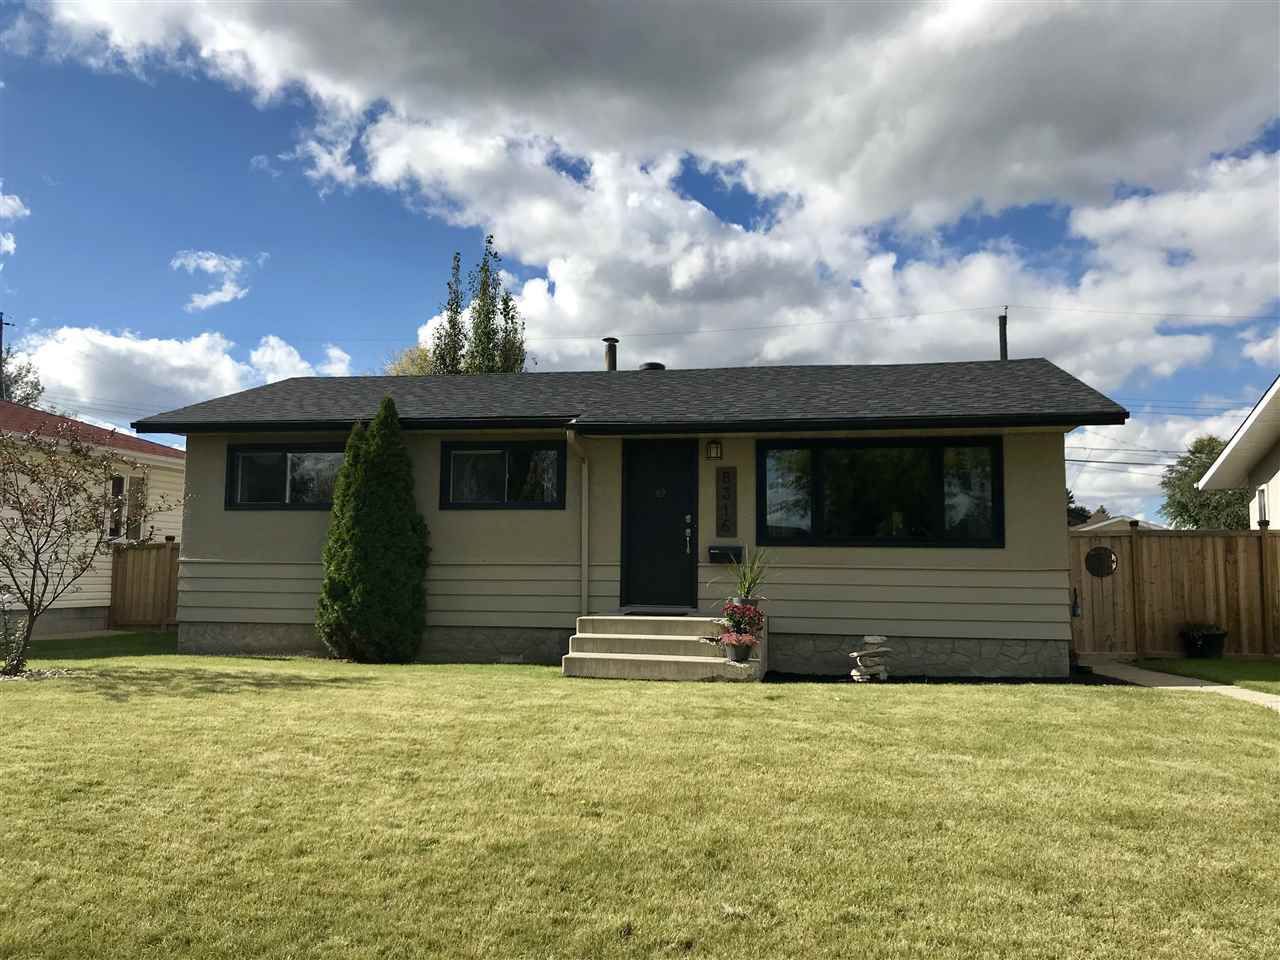 Main Photo: 8316 163 St NW in Edmonton: Zone 22 House for sale : MLS®# E4129178